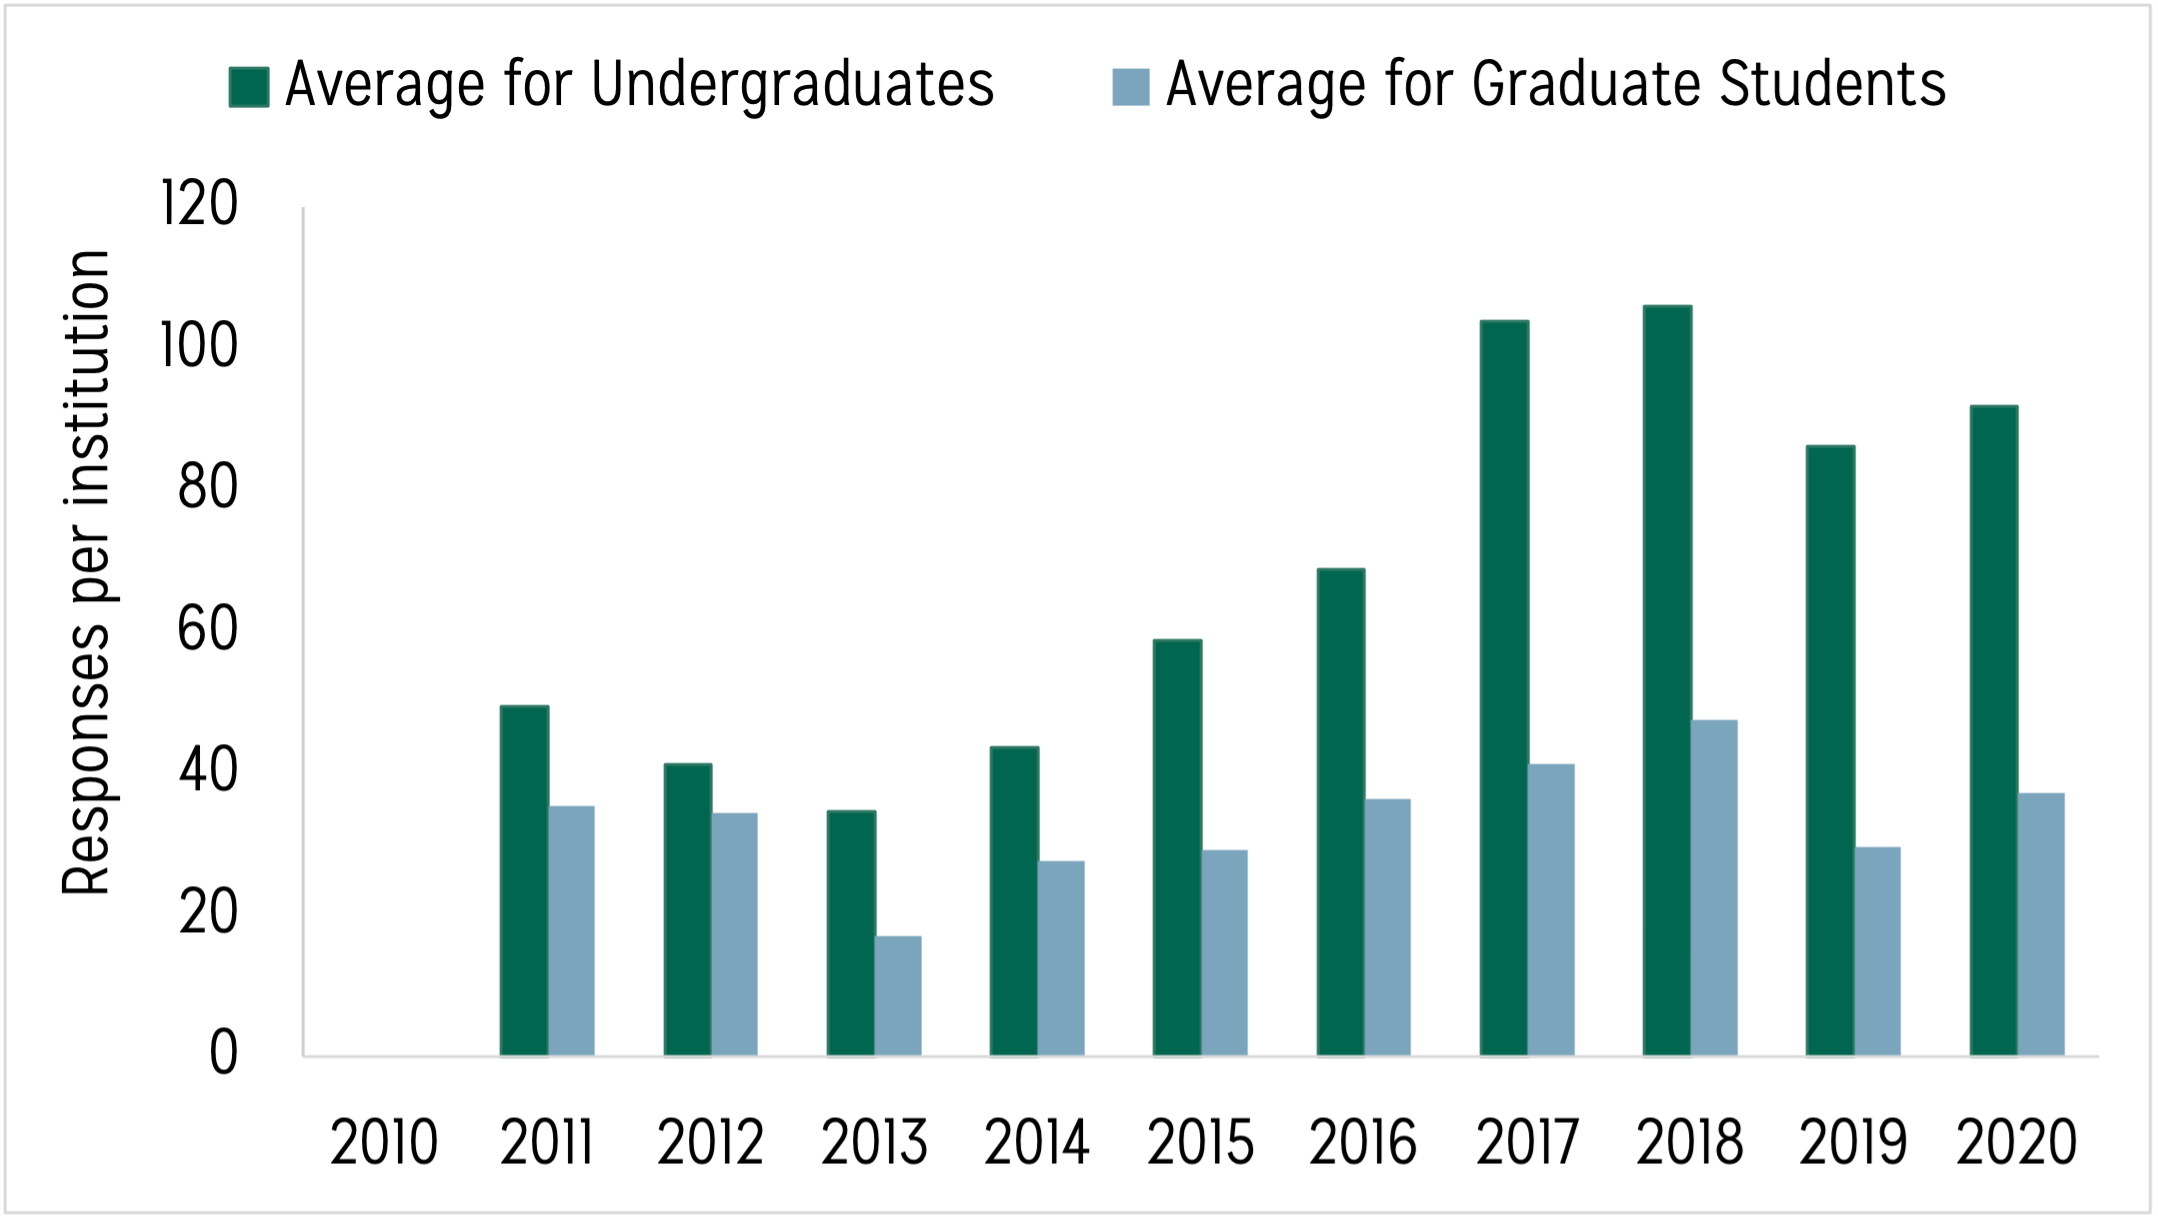 Bar chart displaying two sets of bars. The first set of bars displays the average number of undergraduate student responses received per Data Buddies institution from 2010 to 2020. The second set of bars displays the average number of graduate student responses received per Data Buddies institution from 2010 to 2020